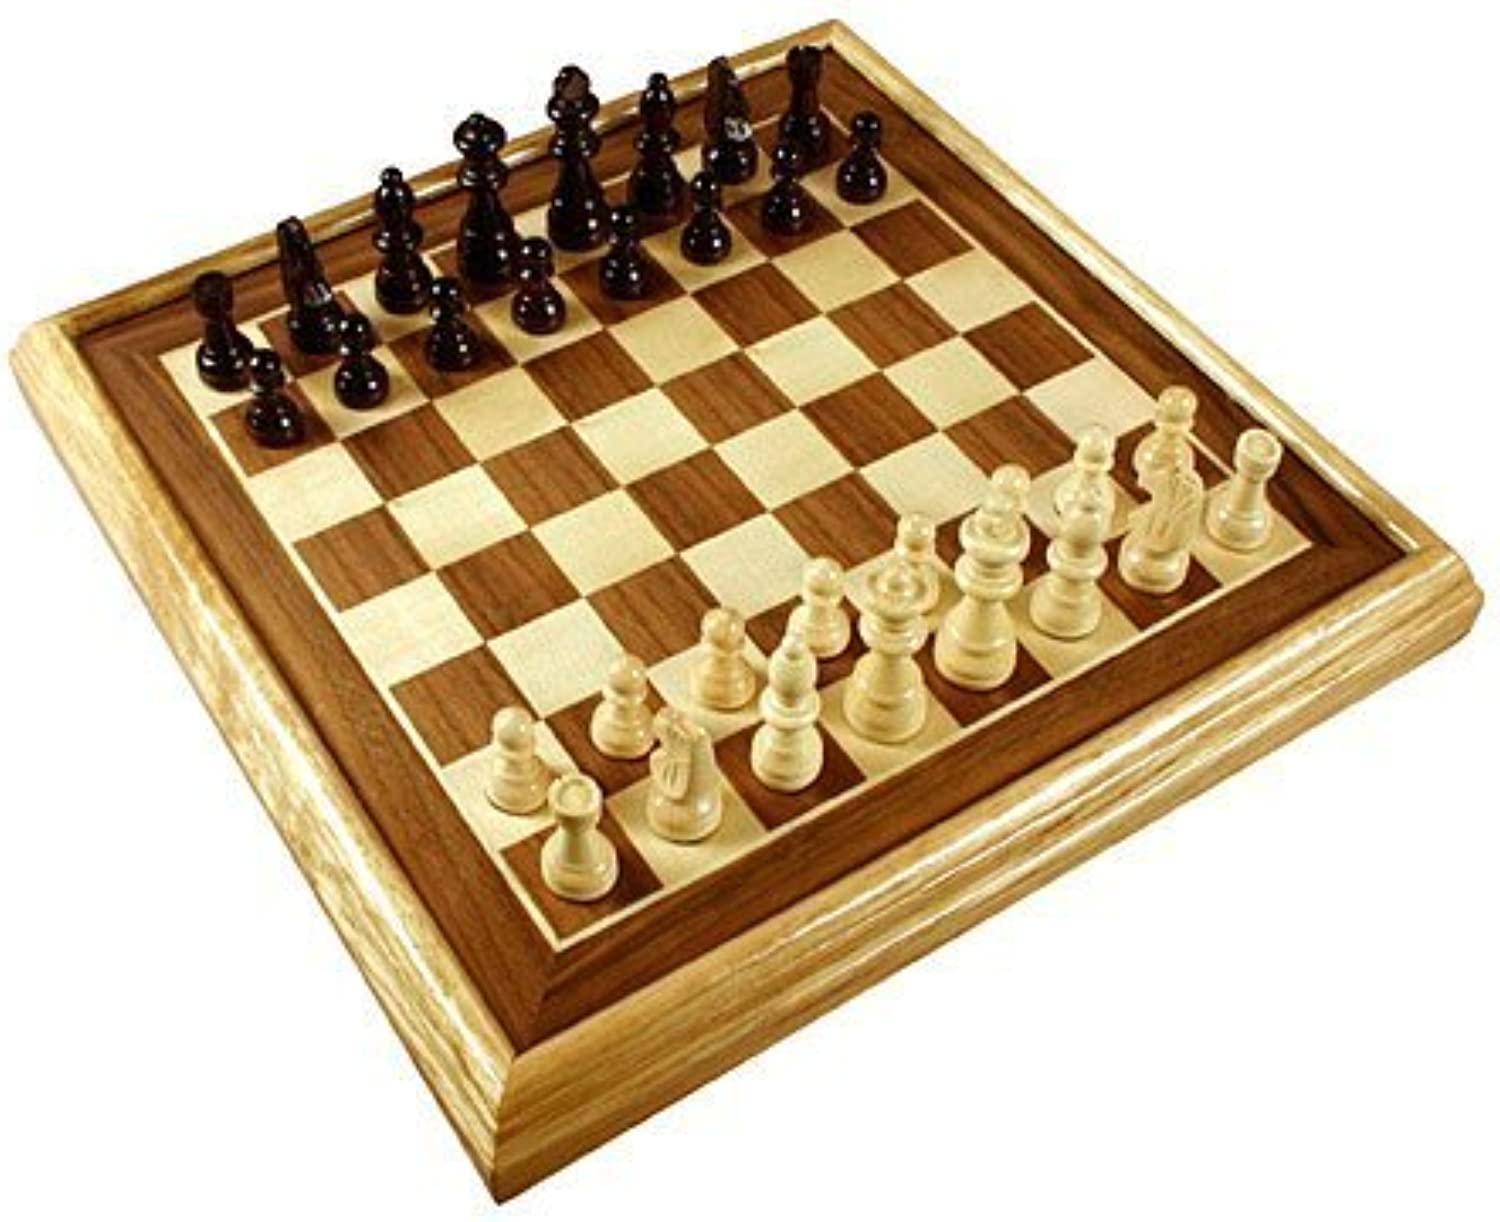 16  Deluxe Inlaid Wood Chess Set w Pieces by Da Vinci